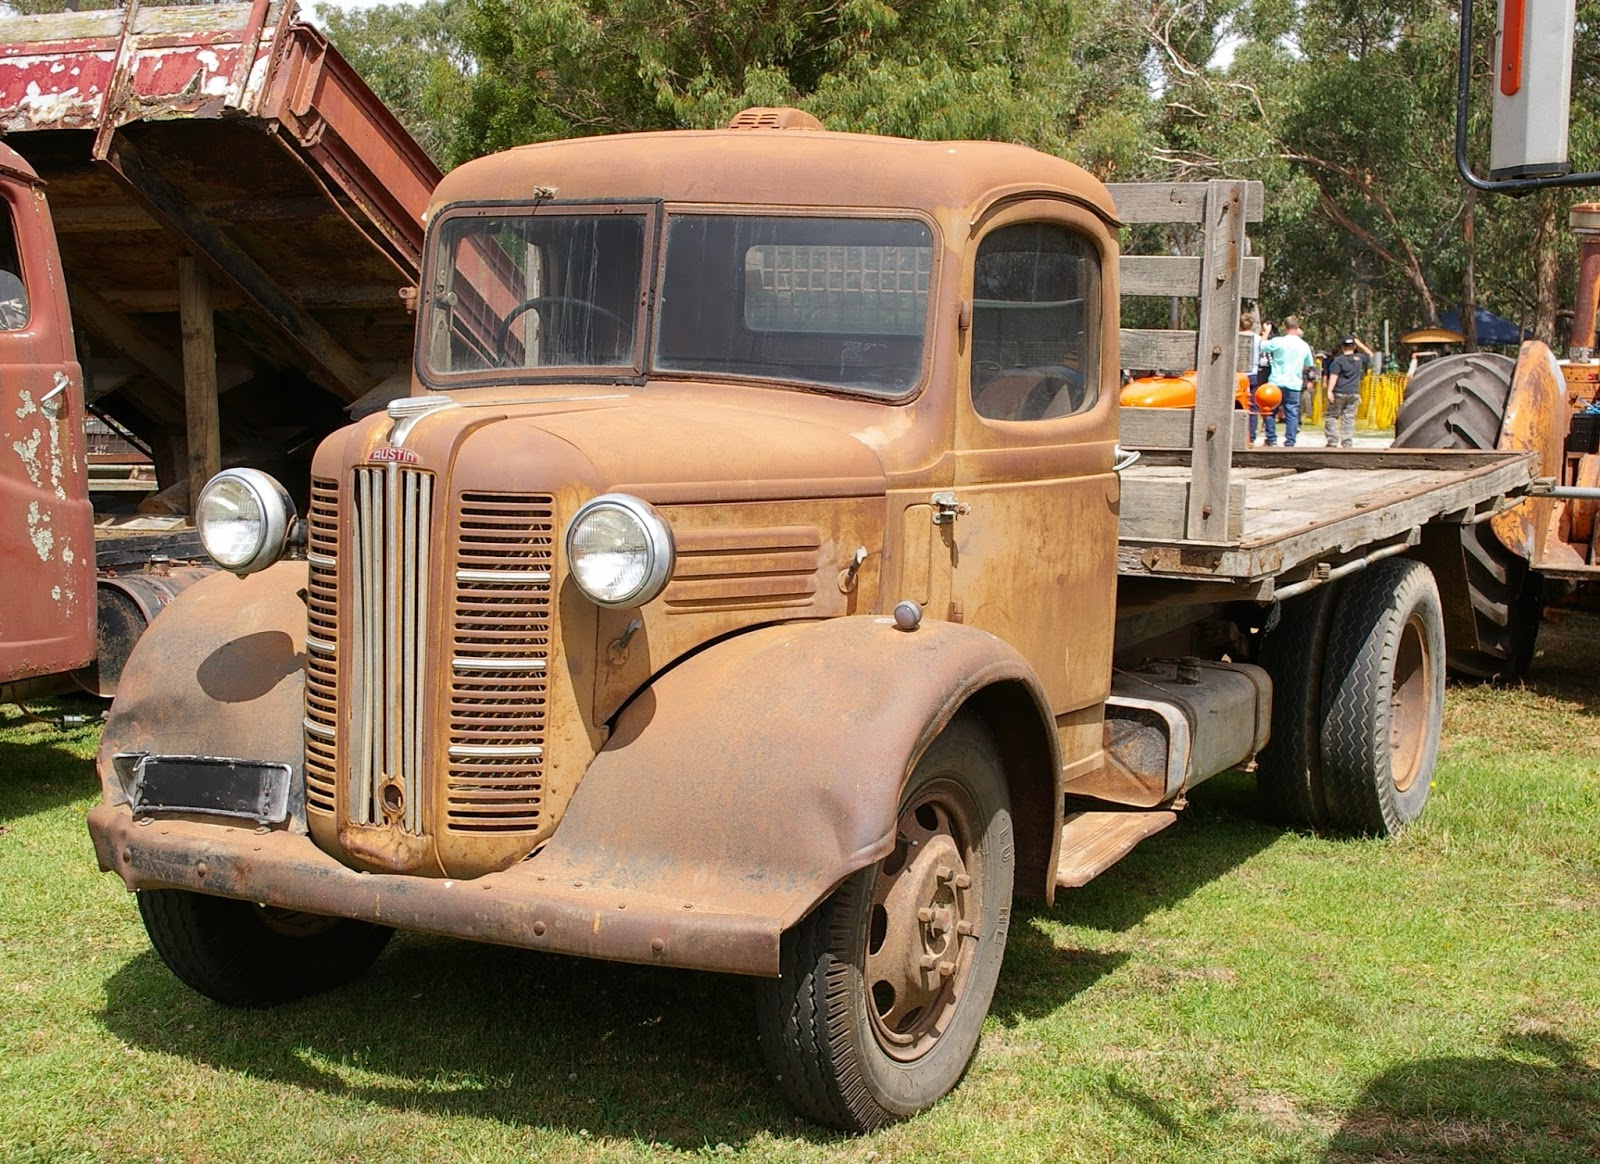 Cute Vintage Trucks For Sale Gallery - Classic Cars Ideas - boiq.info